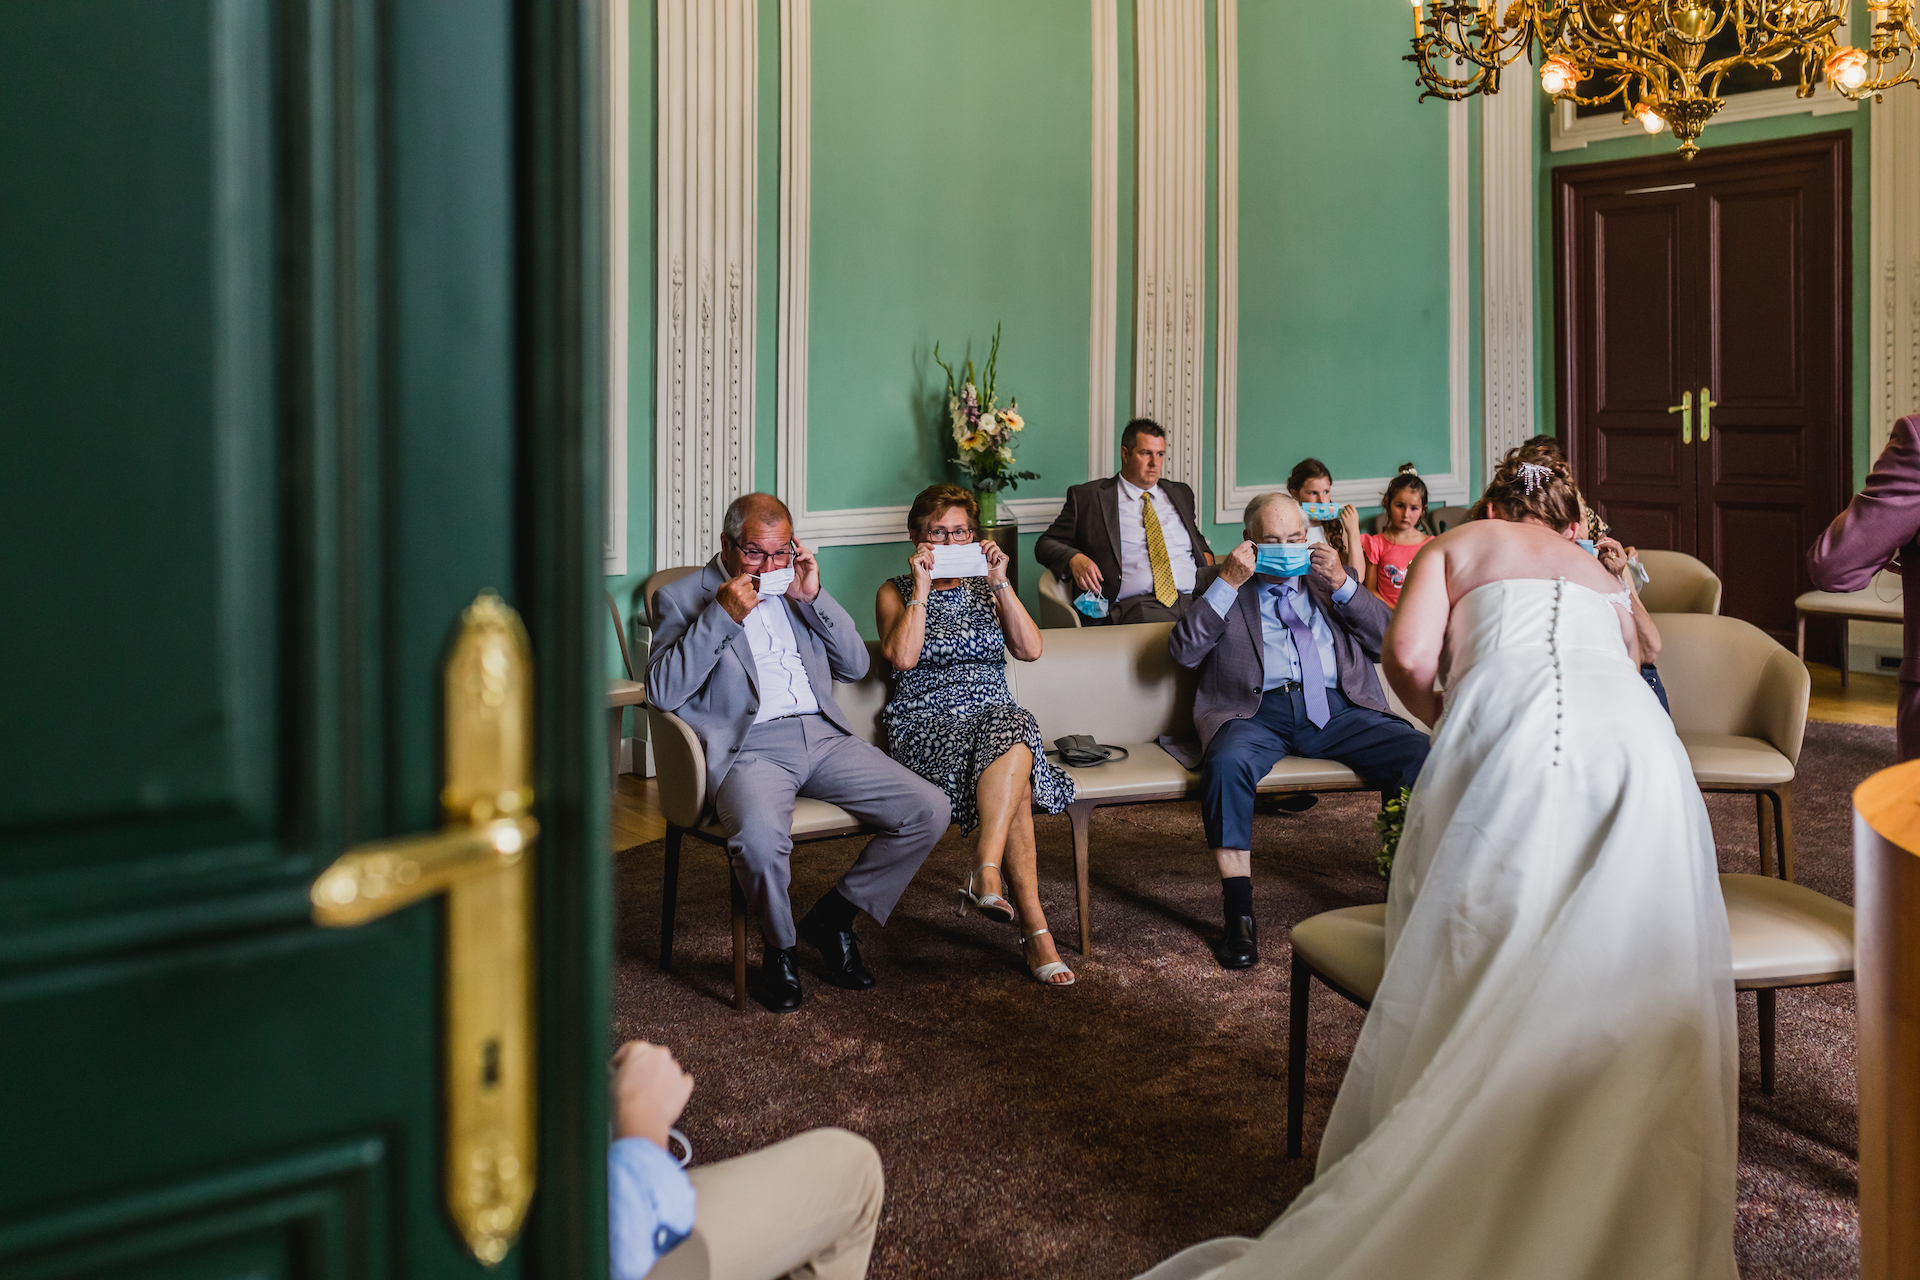 City Hall of Sint-Truiden - COVID-19 Brussels Elopement Ceremony Image | The wedding guests put their face masks on